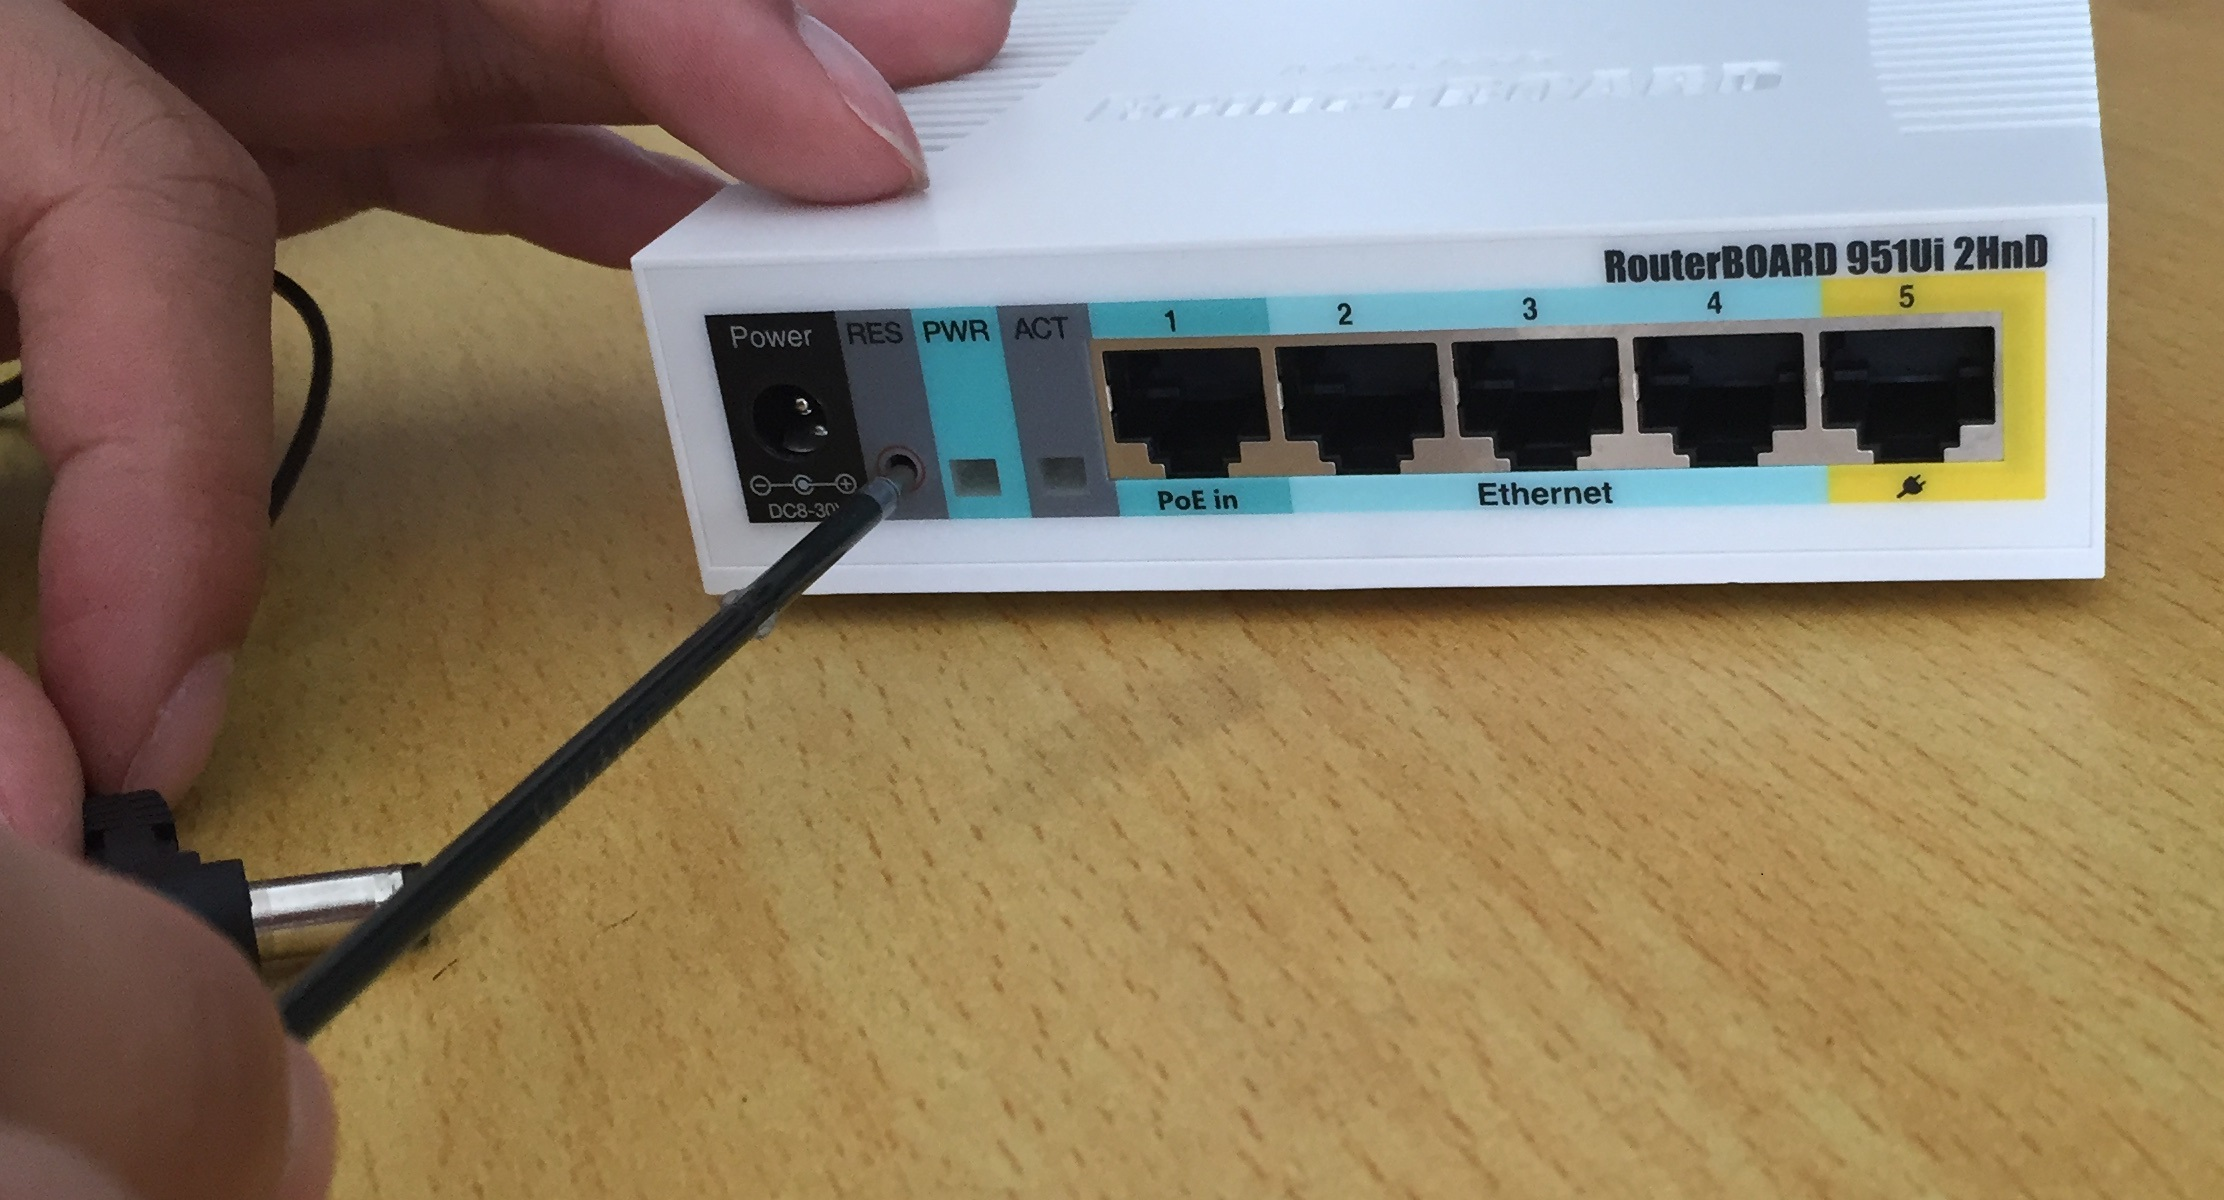 MikroTik ROS how to reset router to factory default configuration